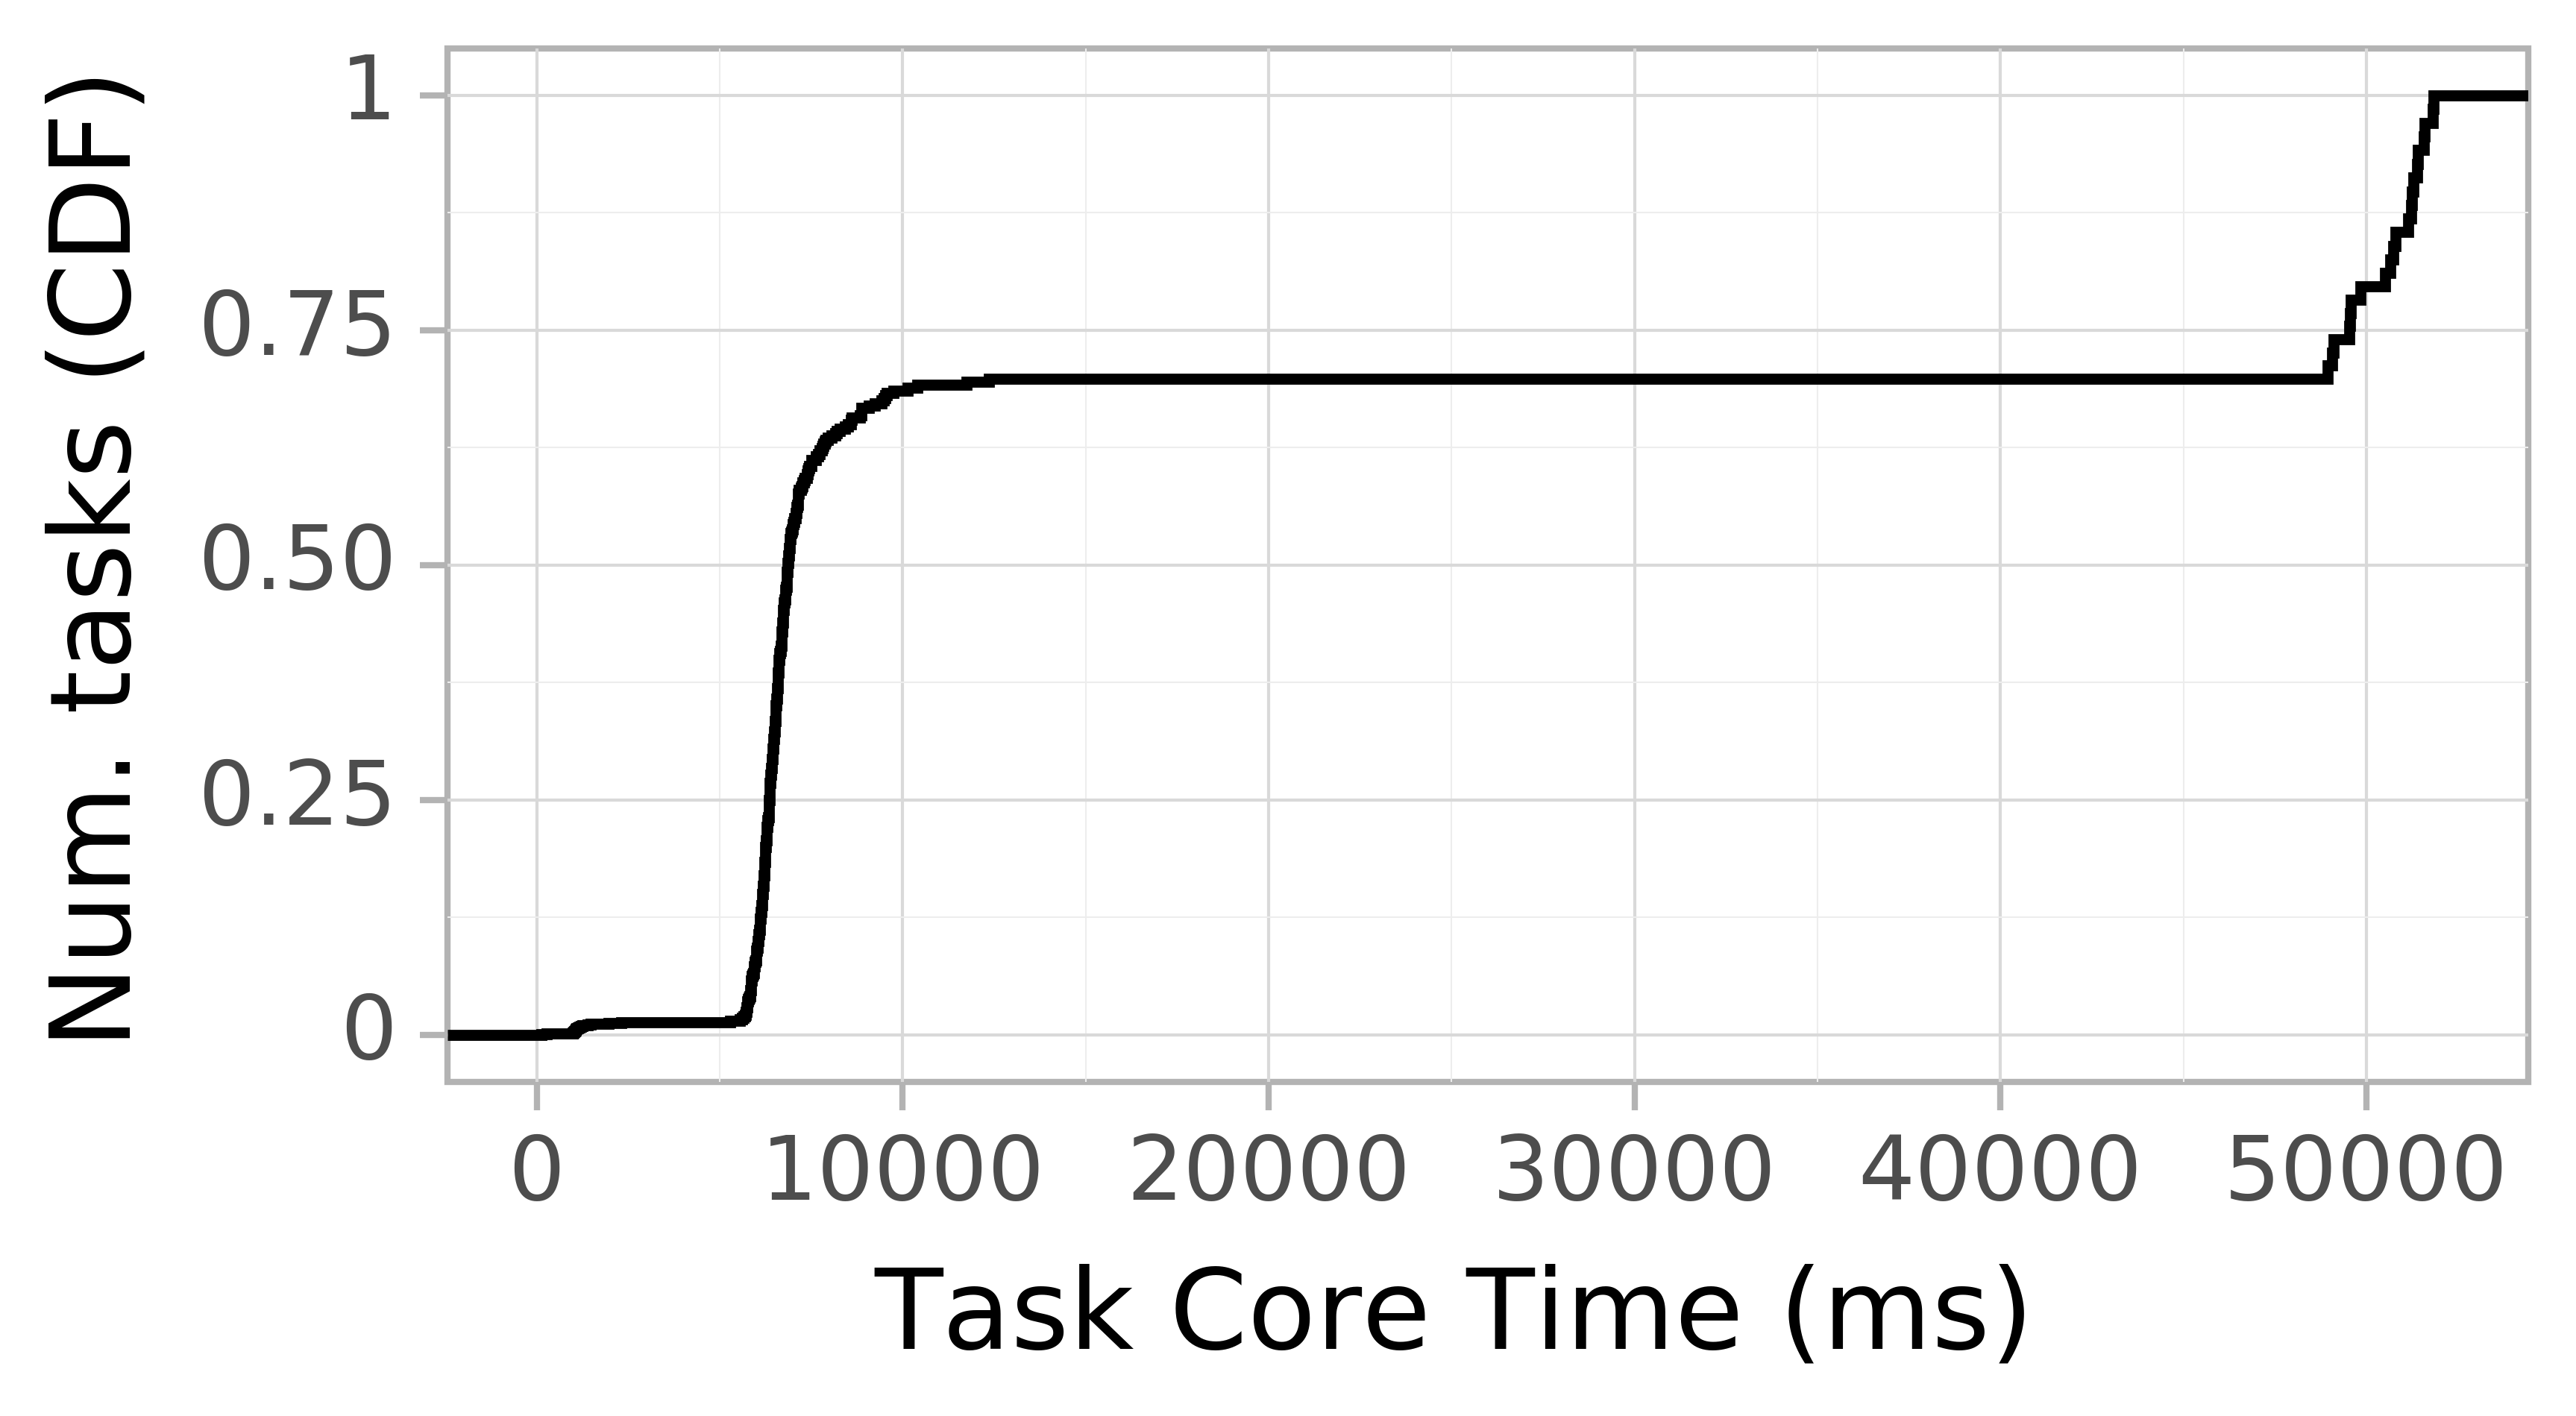 task resource time CDF graph for the askalon-new_ee61 trace.